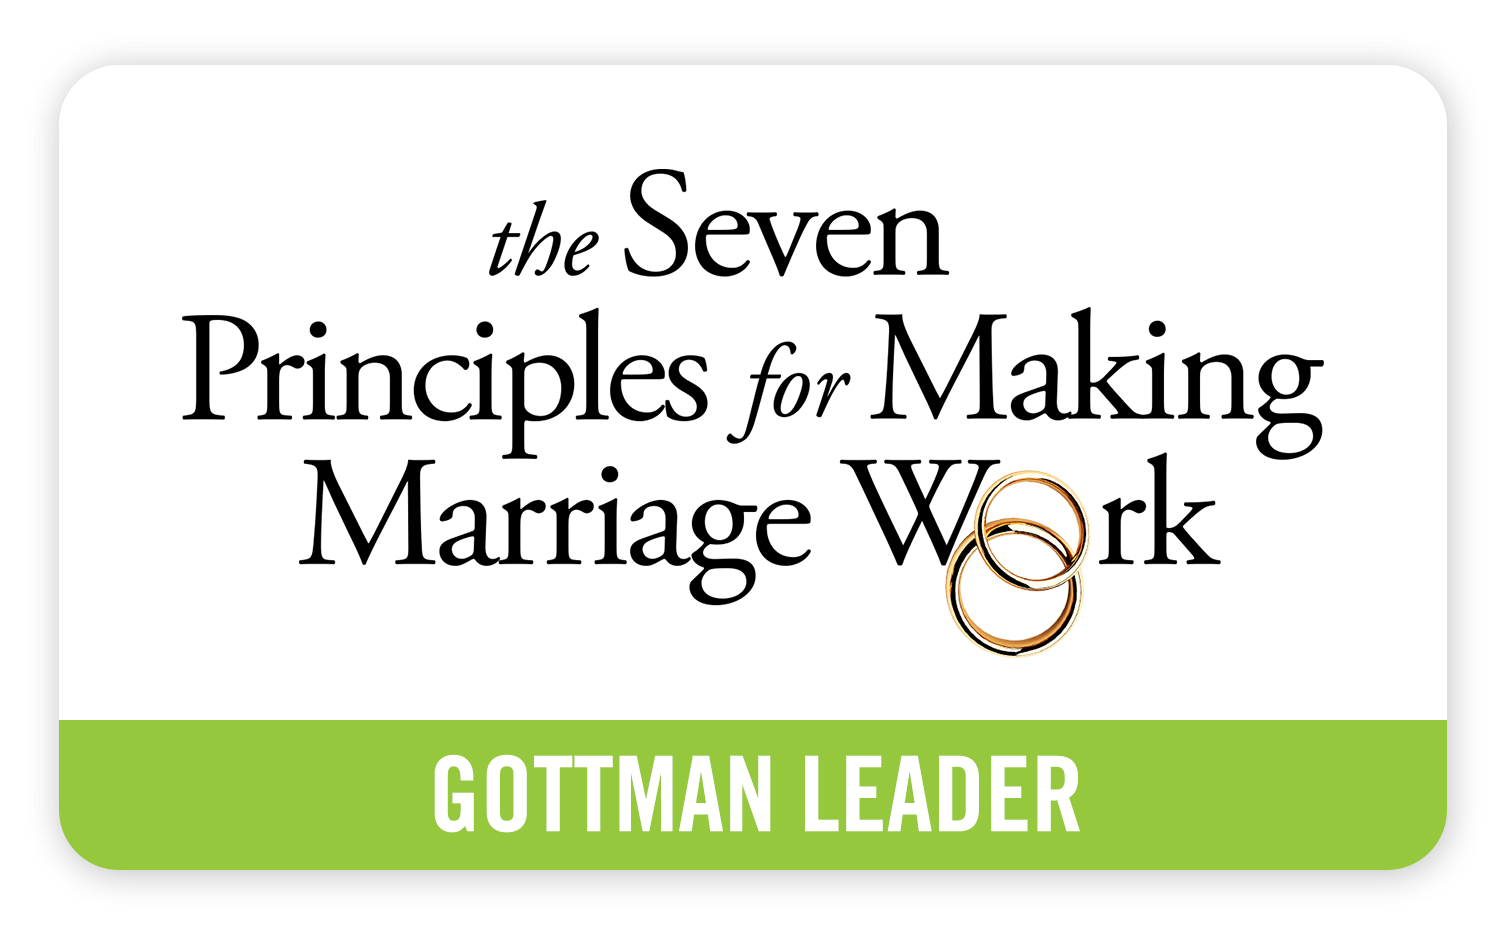 Gottman Referral Network